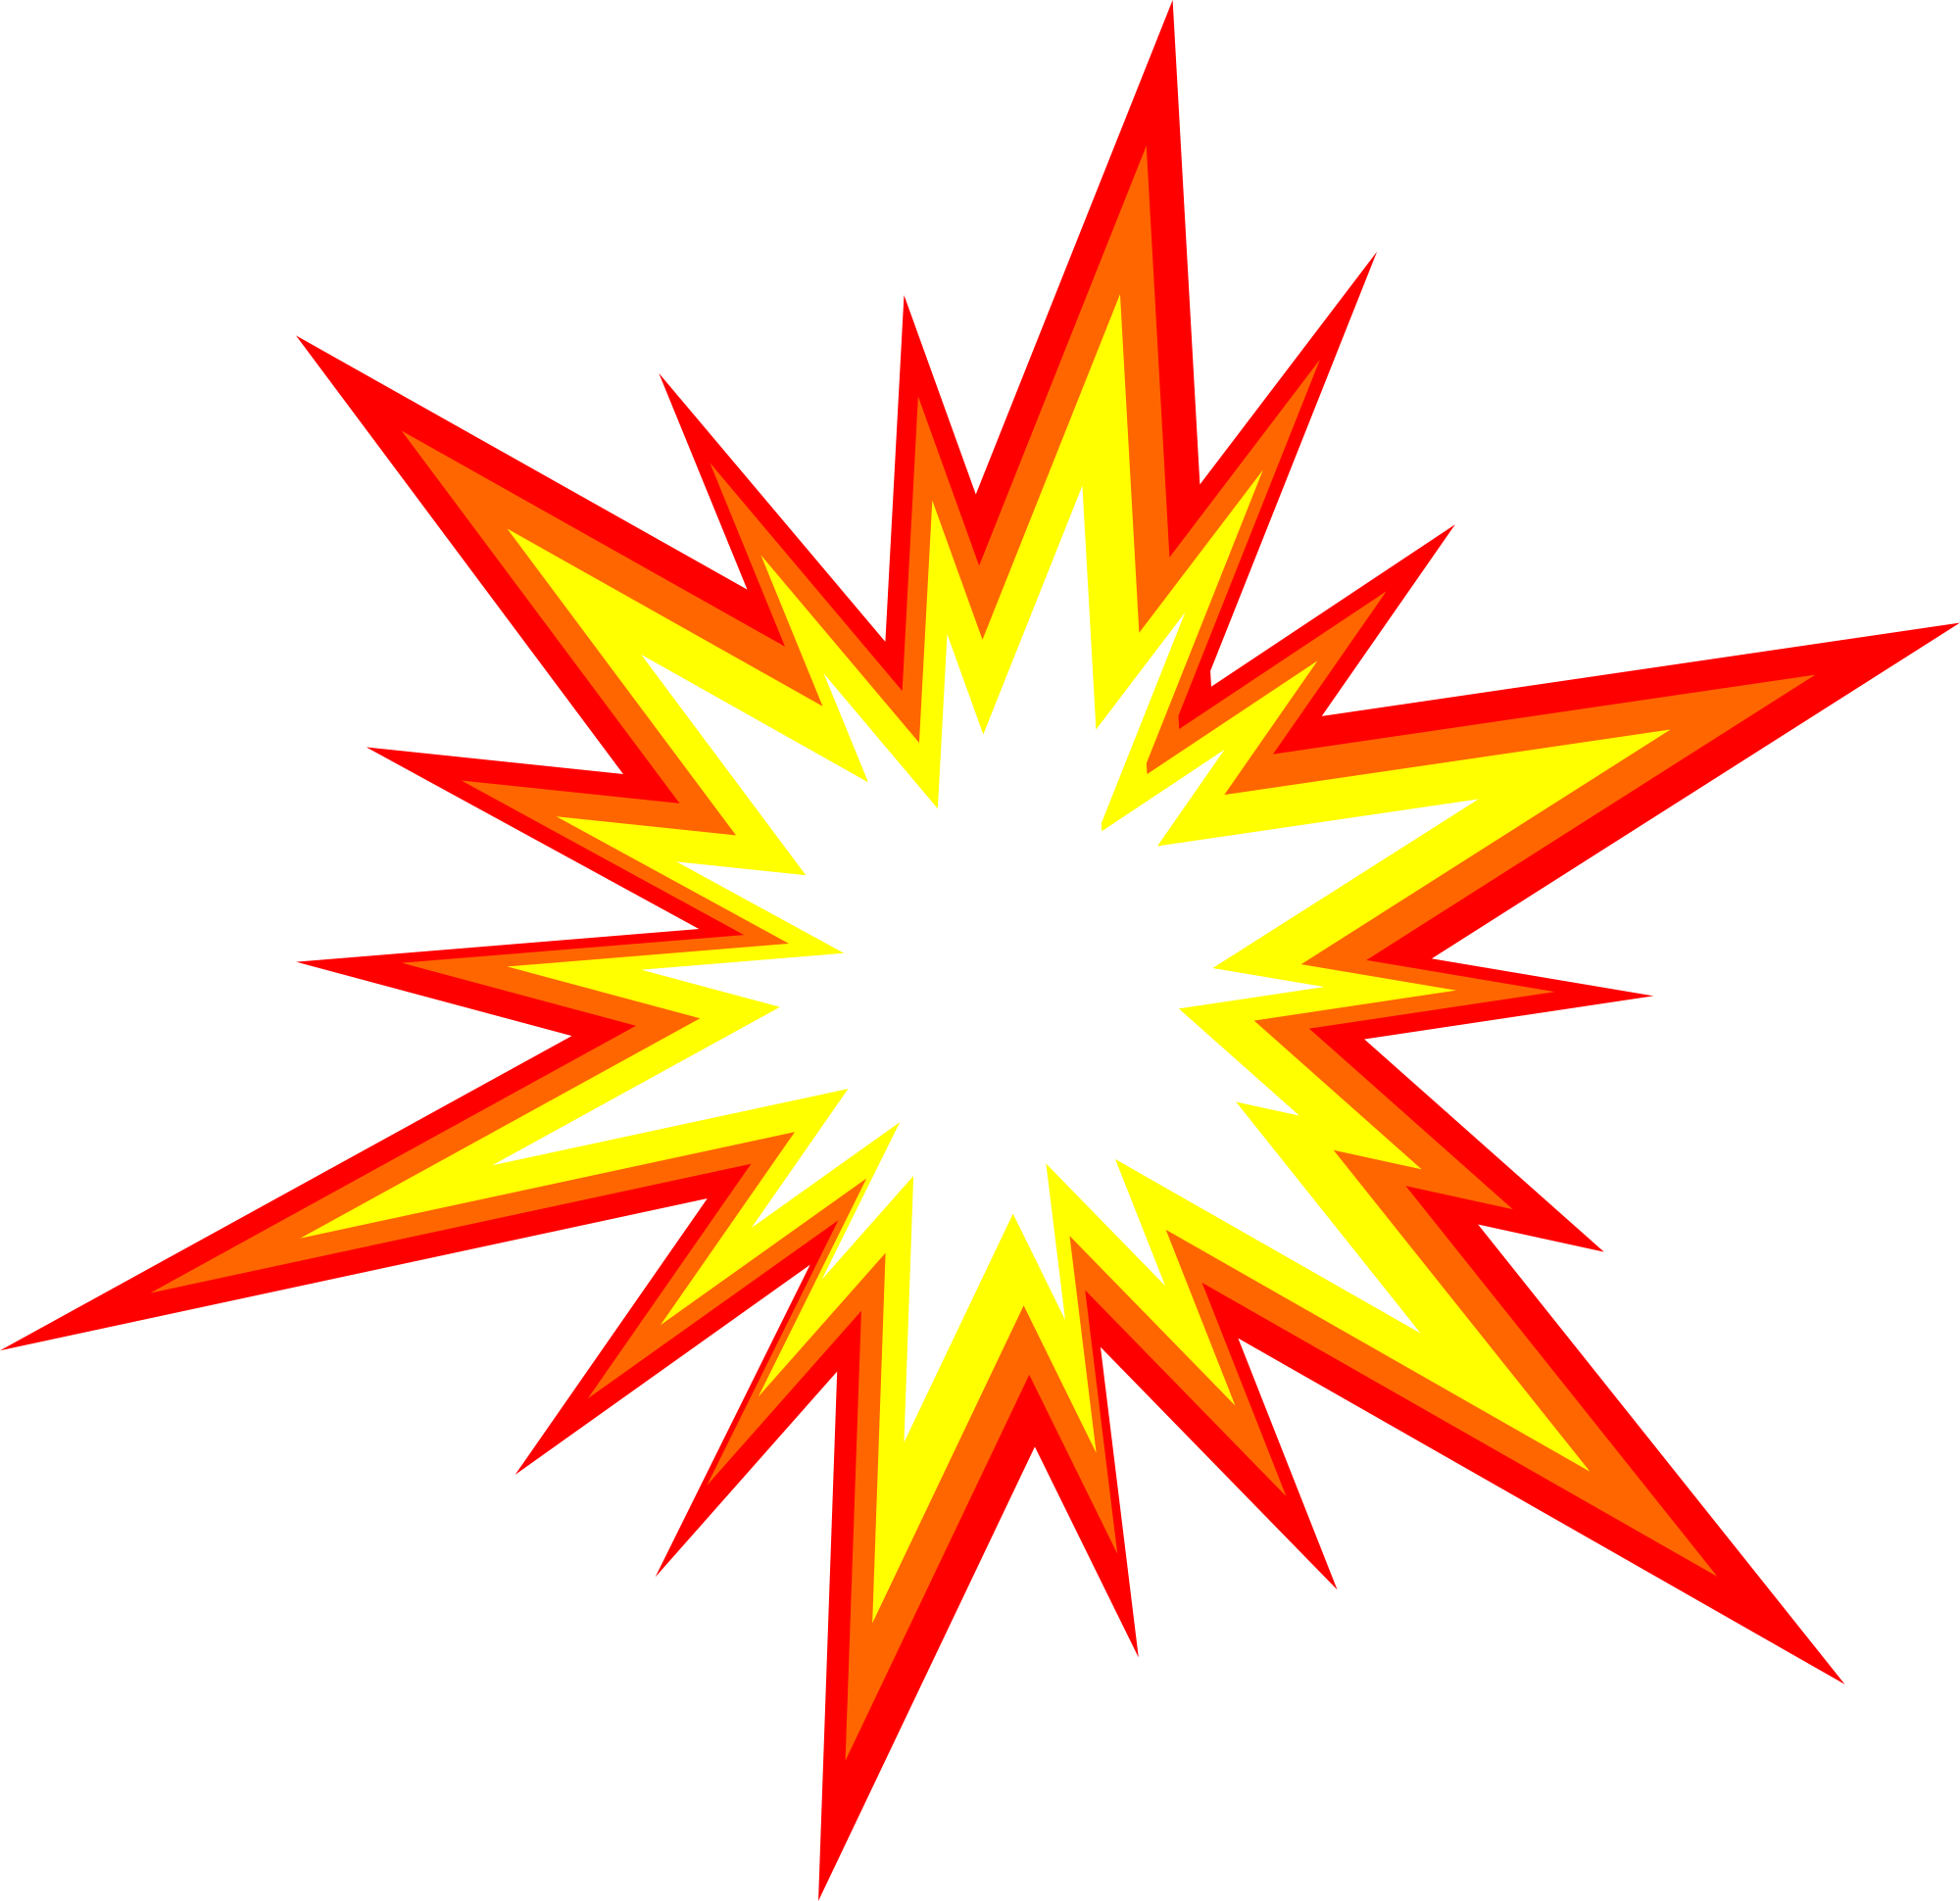 Transparent Explosion Images Free Download PNG Clipart.